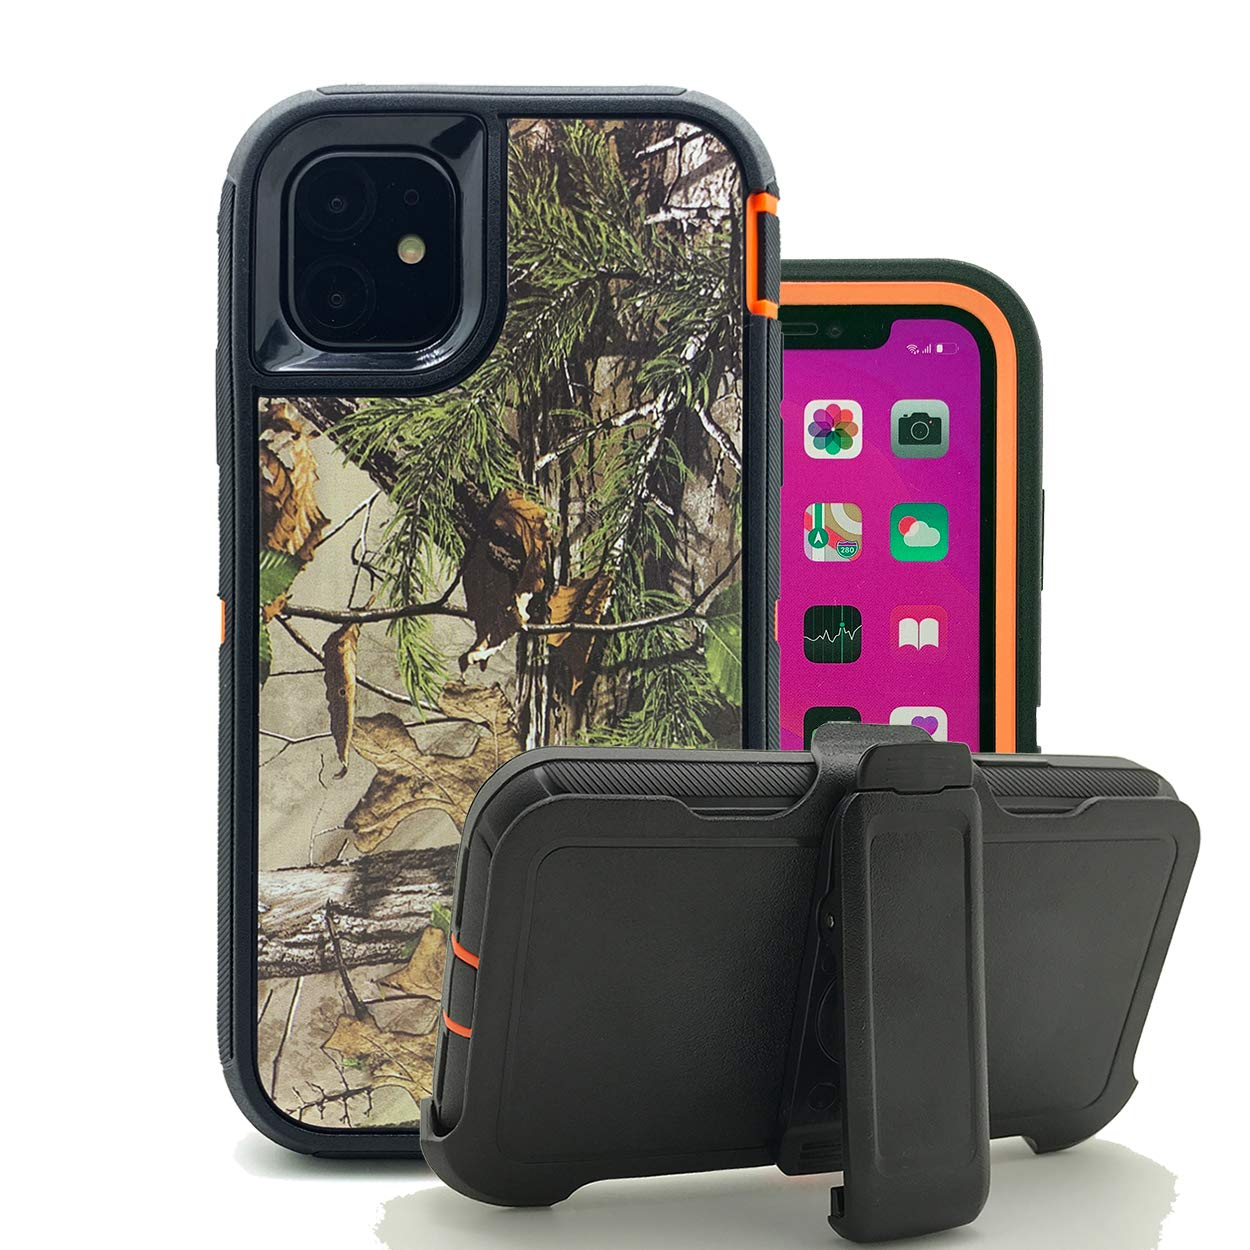 Harsel Heavy Duty Scratch Resistant Defender Camouflage Design Hybrid Armor Military Grade Protection Shockproof Durable Case Cover Bumper with Belt Clip for iPhone 11 Pro (Forest Orange)